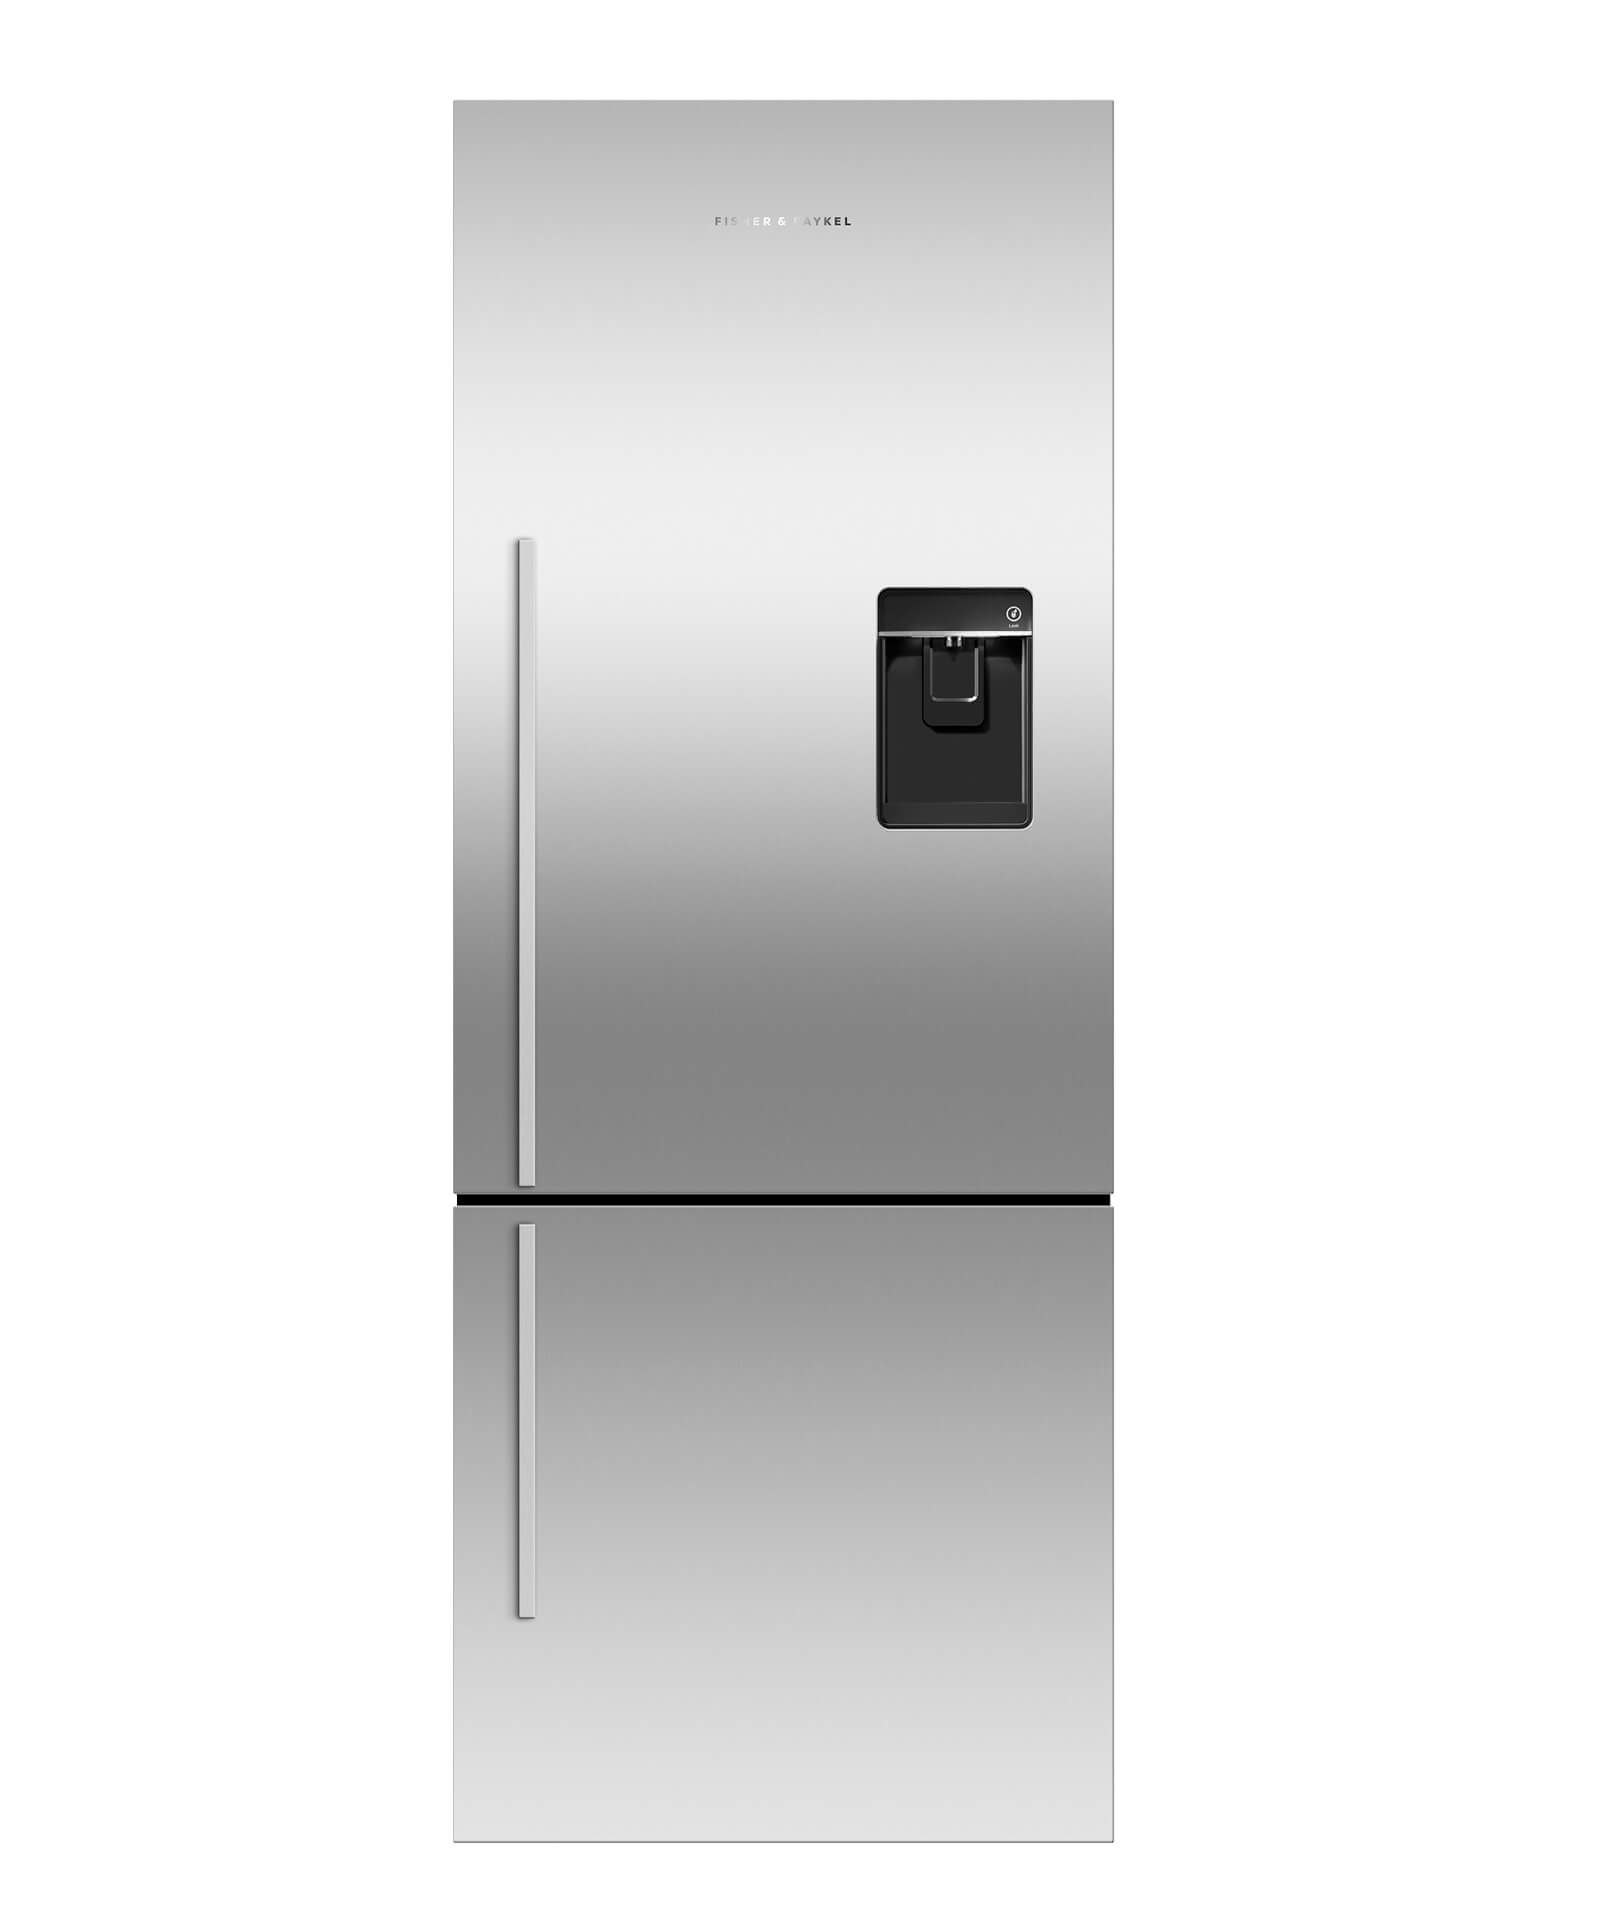 E402BRXFDU4 - ActiveSmart™ Fridge - 635mm Bottom Freezer with Ice & Water 360L - 25139